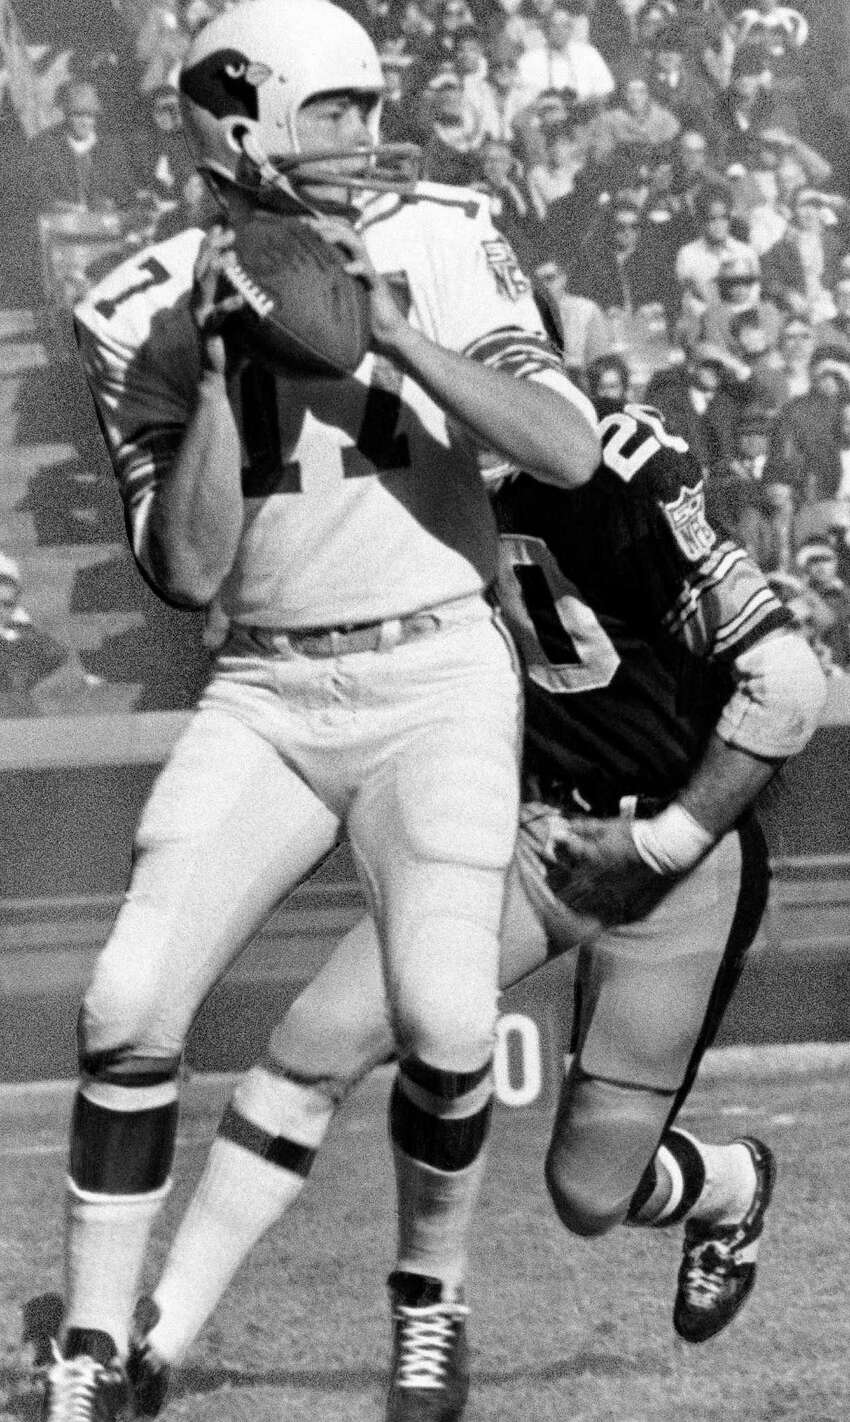 Arizona Cardinals: QB Jim Hart, Southern Illinois. Played 18 seasons with the Cardinals in St. Louis before finishing his career with a season in Washington. Was selected to the Pro Bowl 4 times. PHOTO: St. Louis Cardinals quarterback Jim Hart (17) getting set to pass in game against Pittsburgh Steelers shown Nov. 30, 1969.